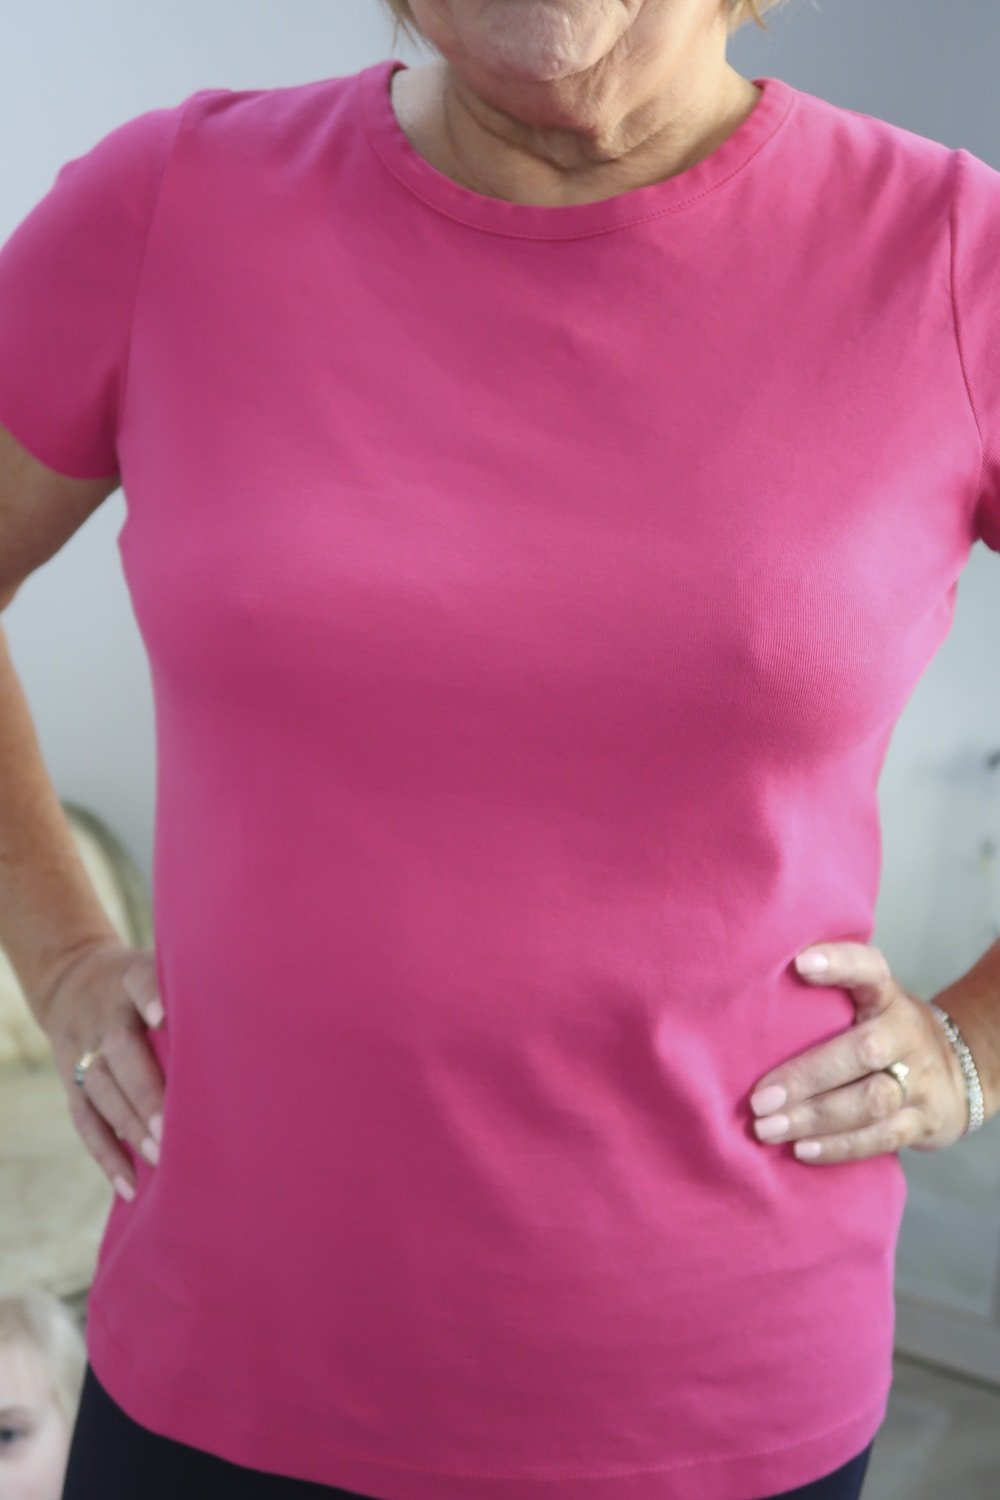 Fashion Blogger 50 Is Not Old styling a pink tee with a crew neck